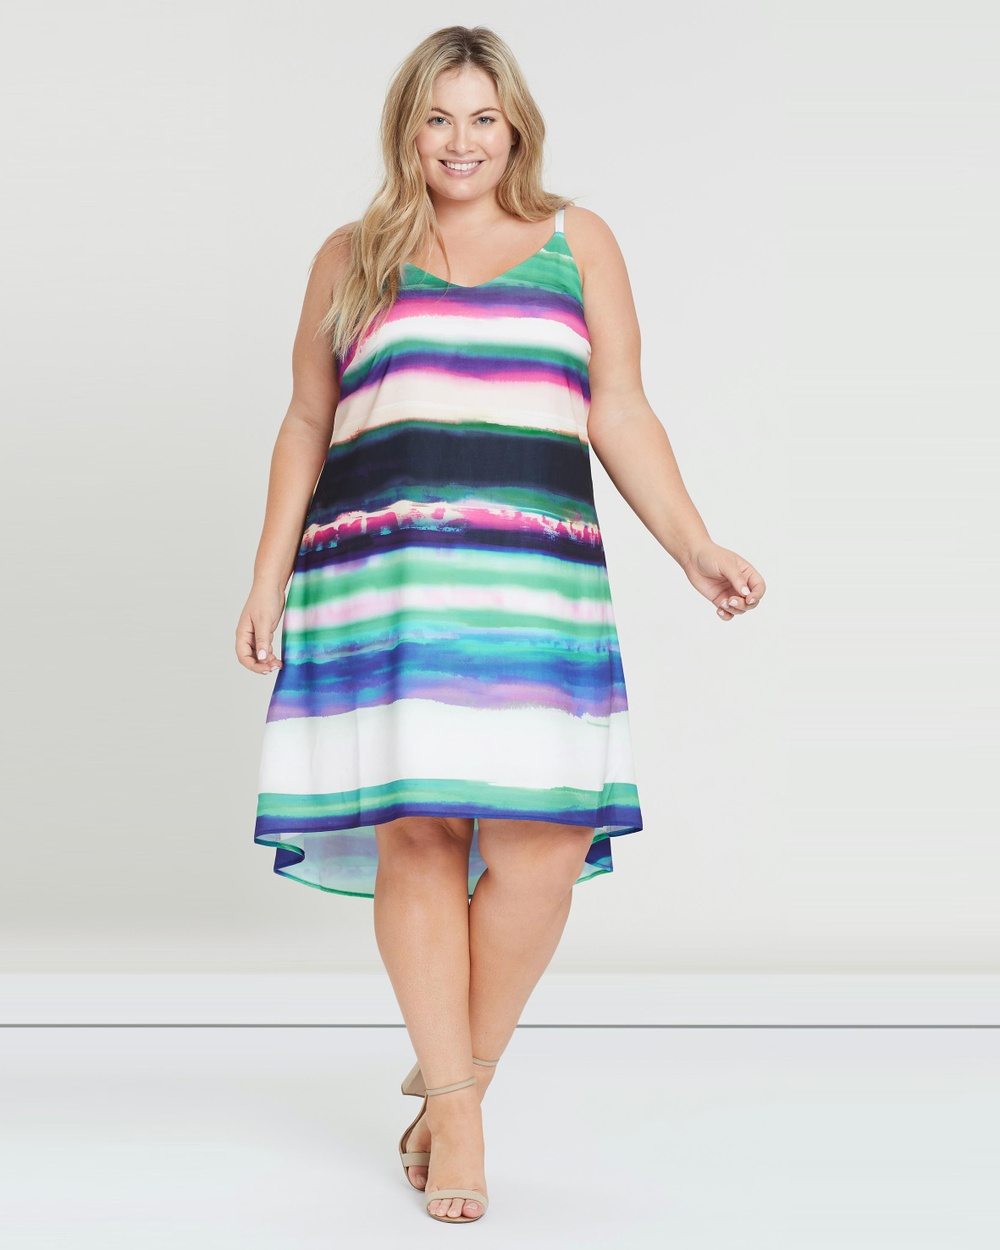 Rebel Wilson x Angels Cami Swing Dress Printed Dresses Watercolour Cami Swing Dress